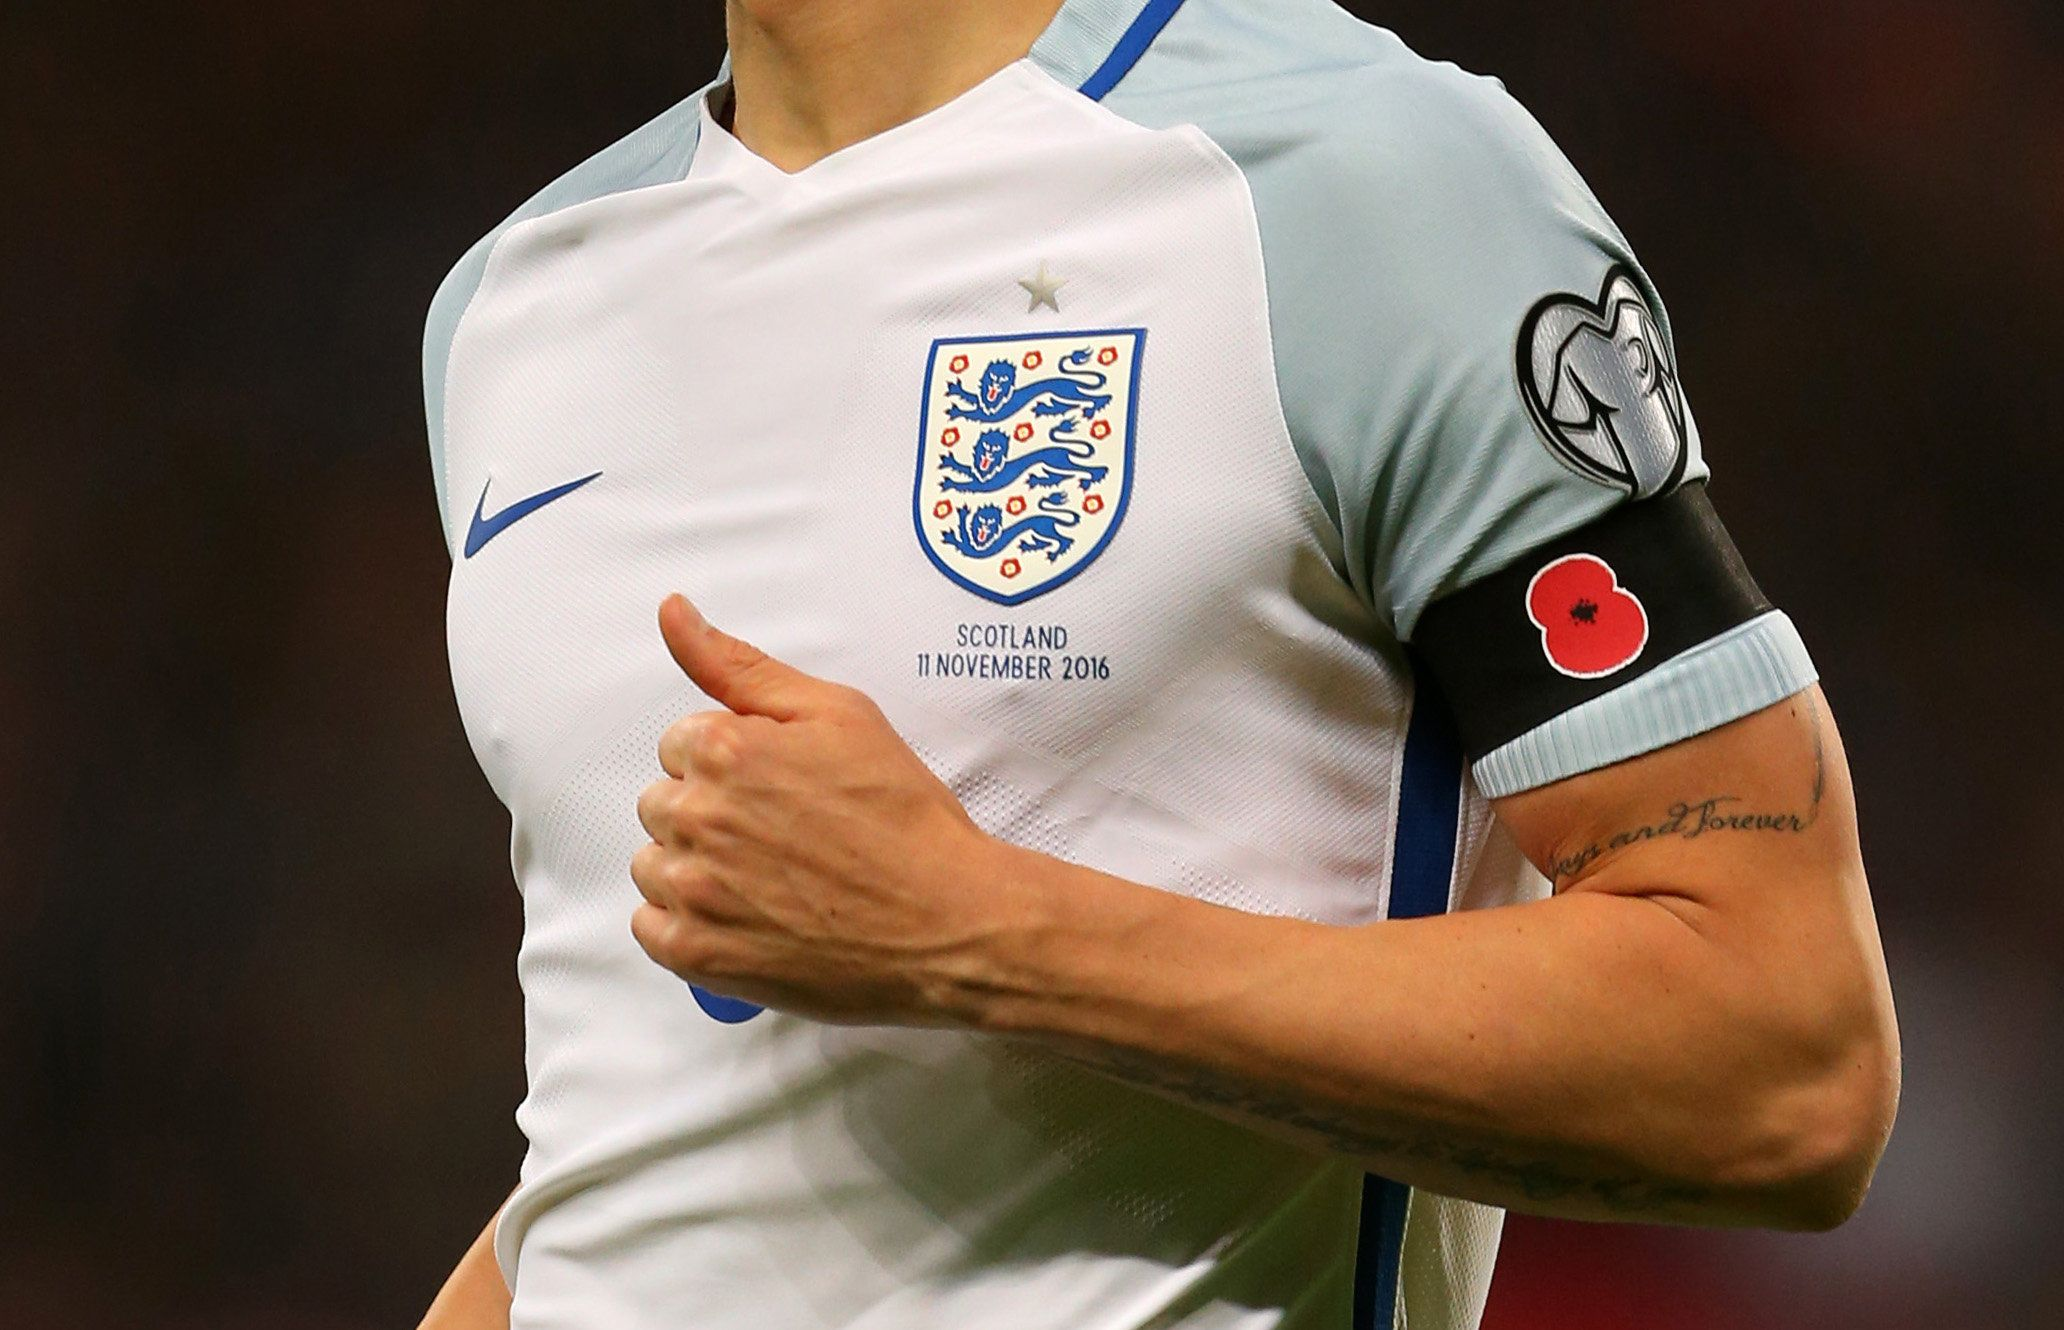 <strong>England and Germany will wear poppy armbands for their friendly ahead of Armistice Day&nbsp;</strong>